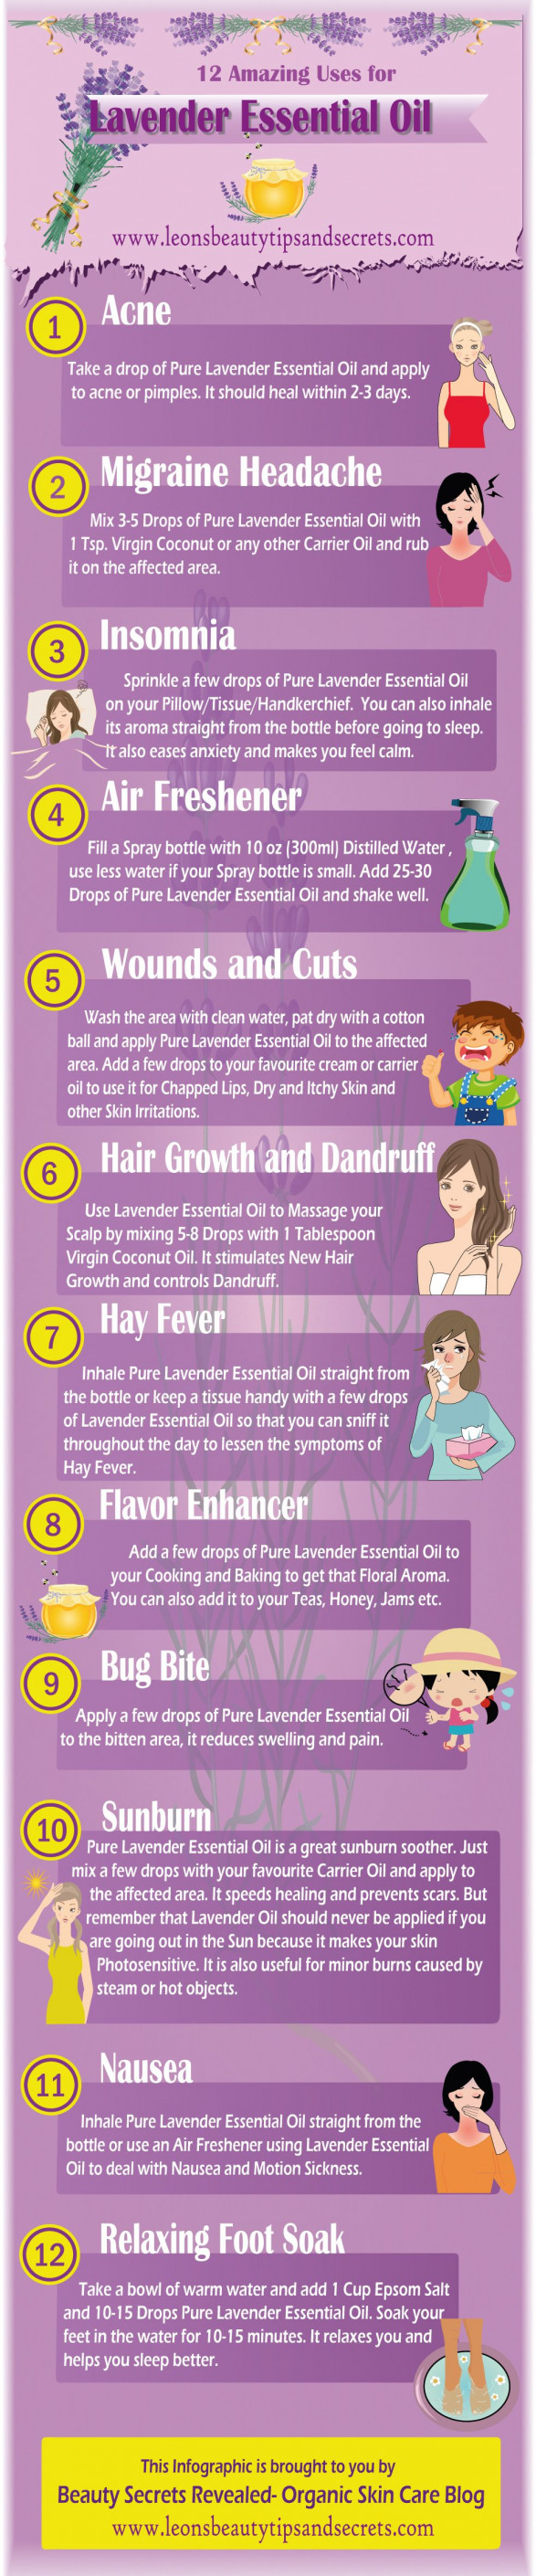 The Healing Power of Lavender Oil: 12 DIY Natural Health & Beauty Recipes